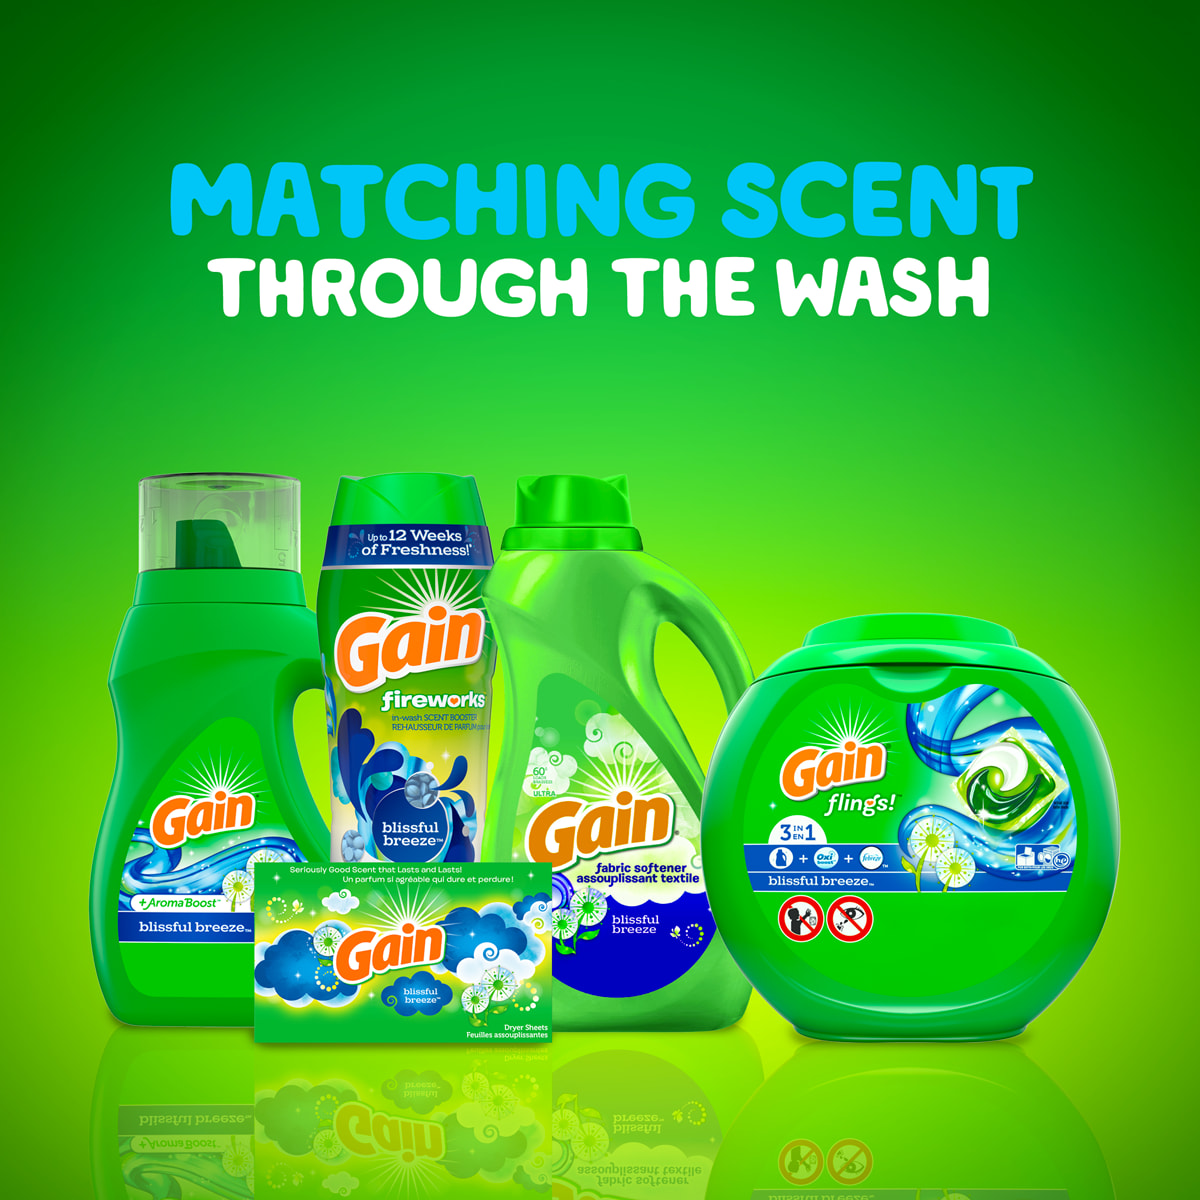 Gain Blissful Breeze products match scent throughout the wash